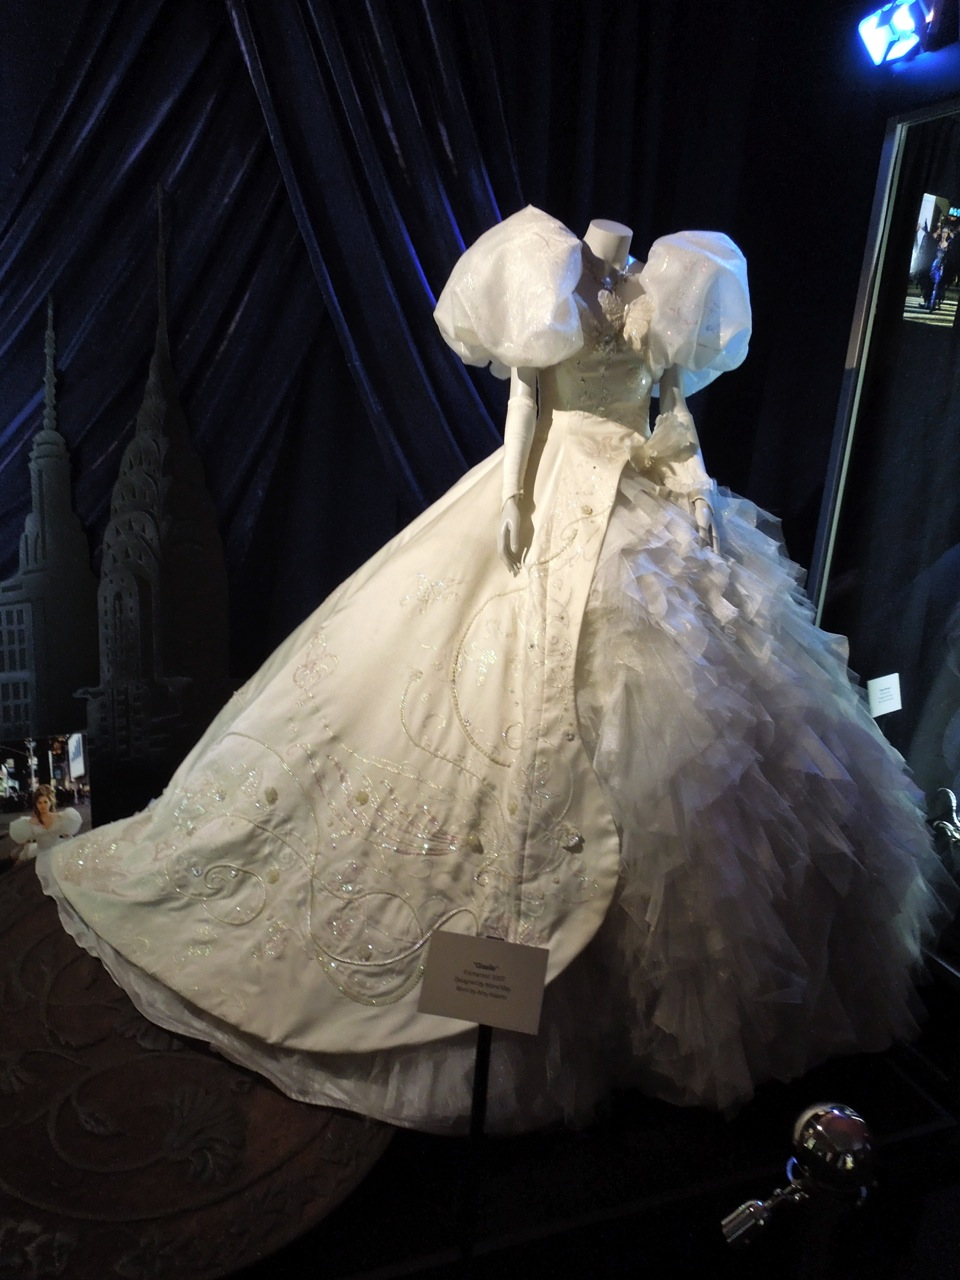 Giselle Fairytale Gown Worn By Amy Adams In Enchanted On Display